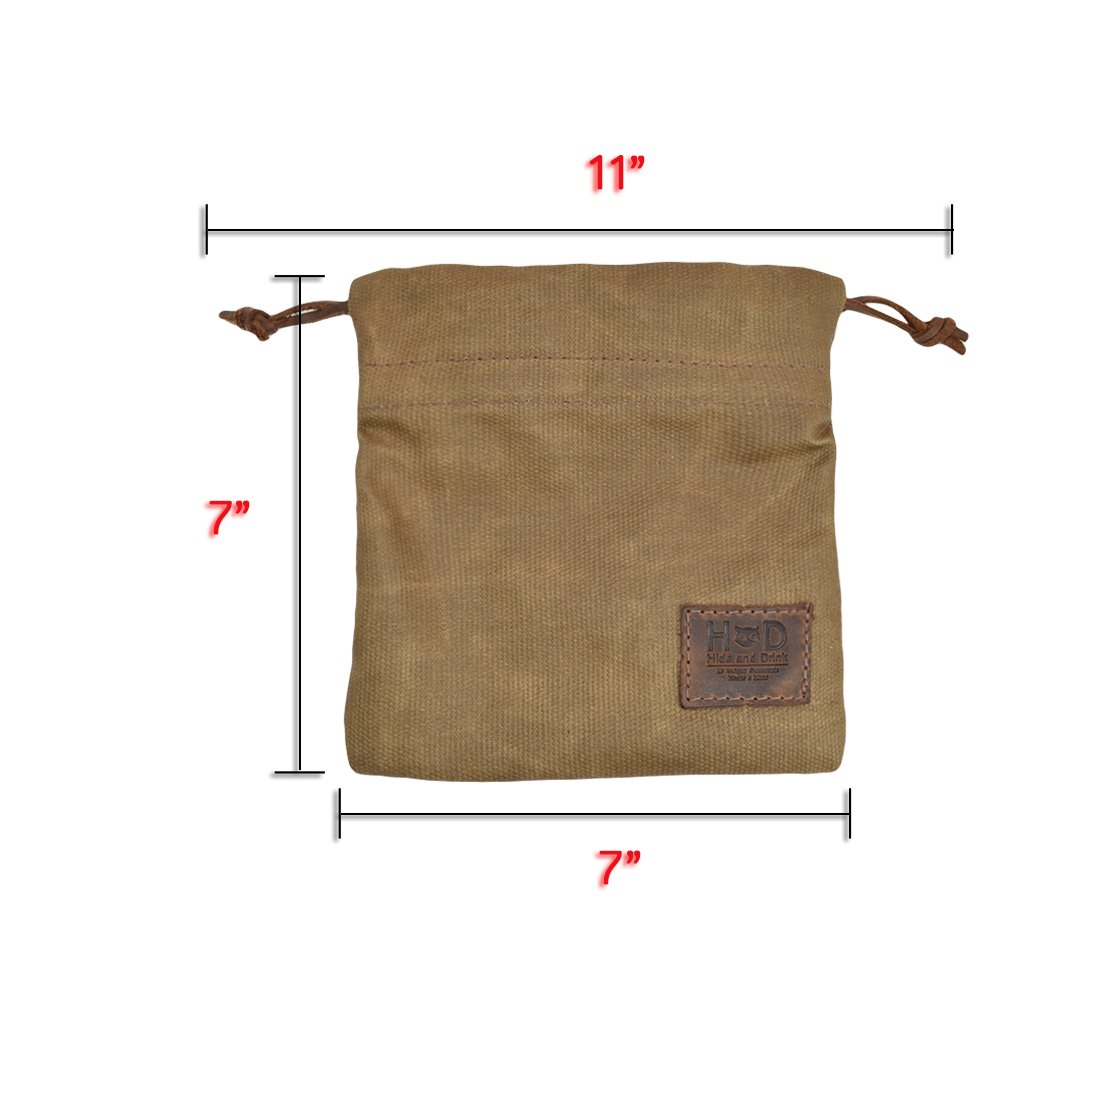 Hide & Drink Waxed Canvas Golf Valuables Field/Travel / Tech/Board Game Dice Pouch Handmade by Fatigue by Hide & Drink (Image #7)